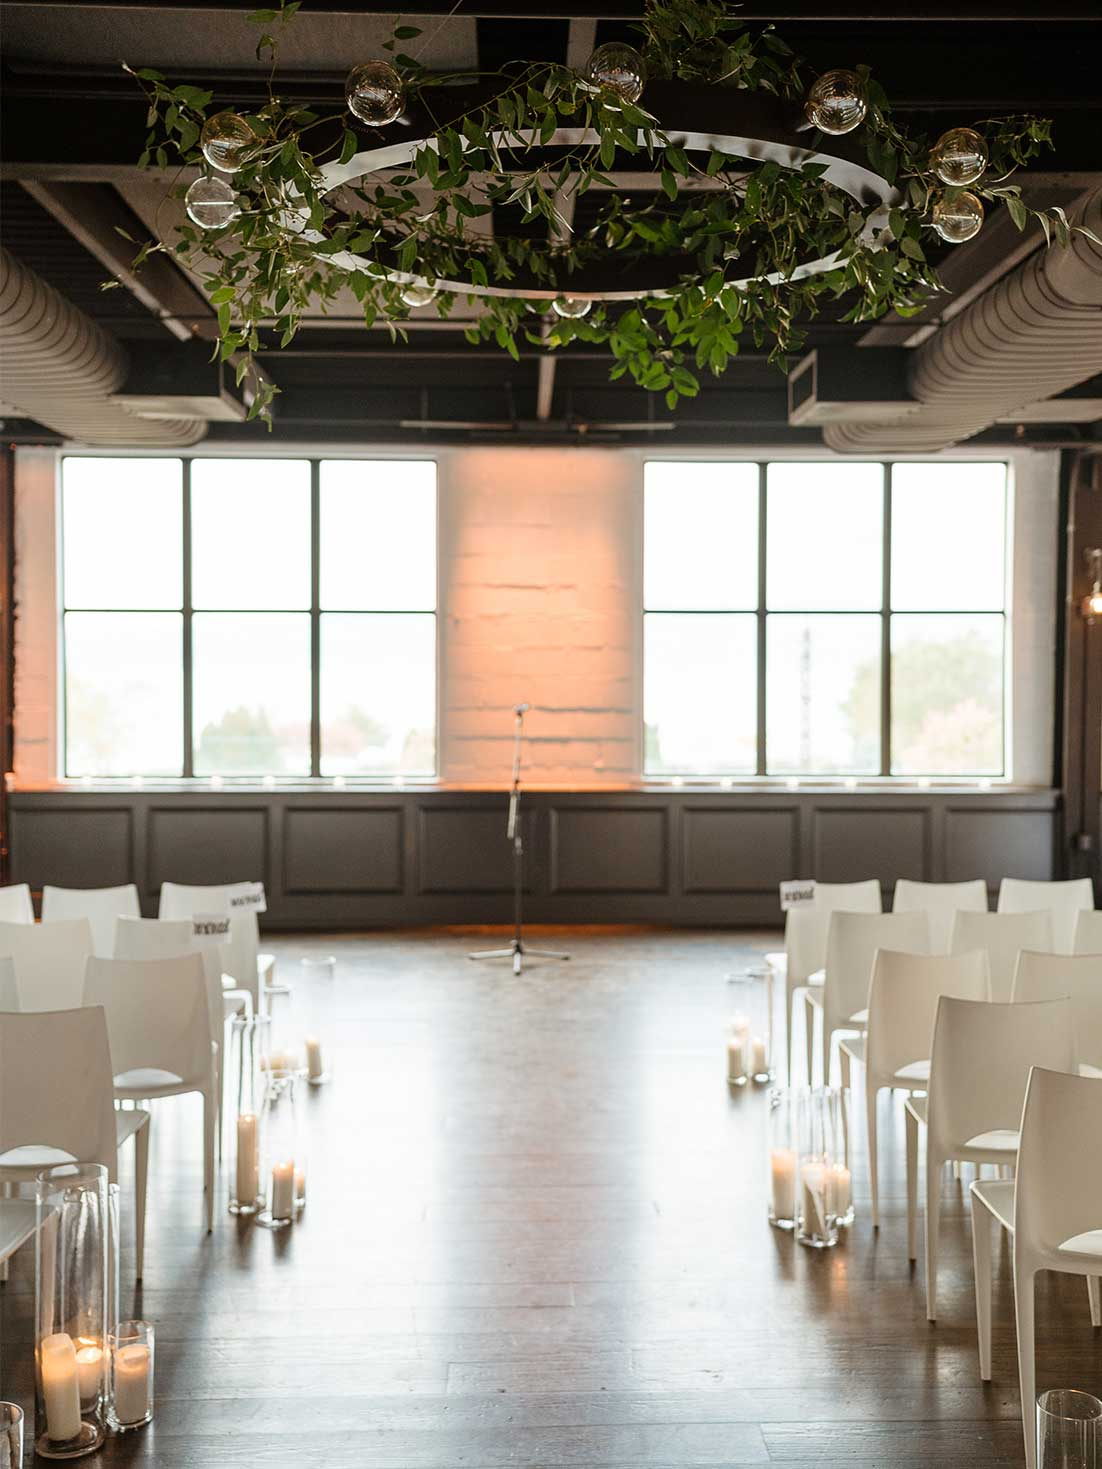 Ceremony set in an industrial loft